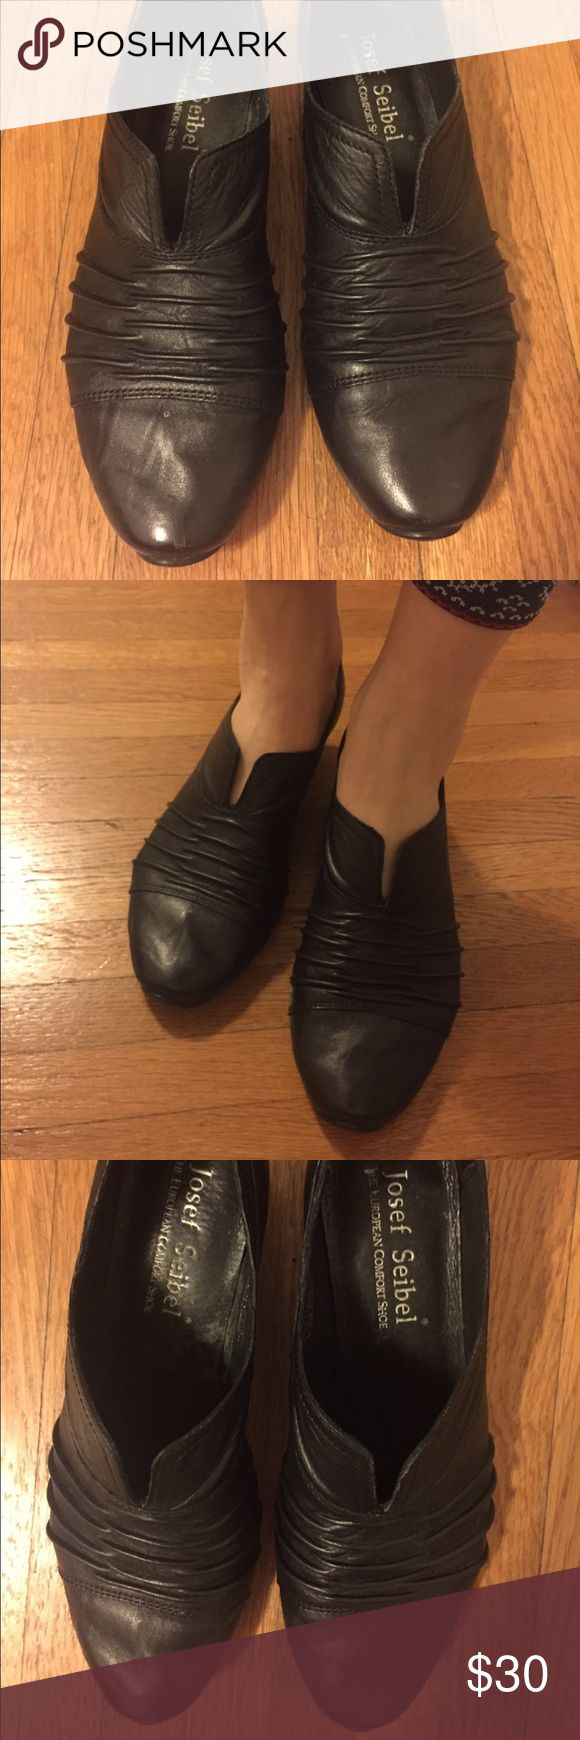 Leather shoes Good condition, soft and comfortable small heel Josef Seibel Shoes